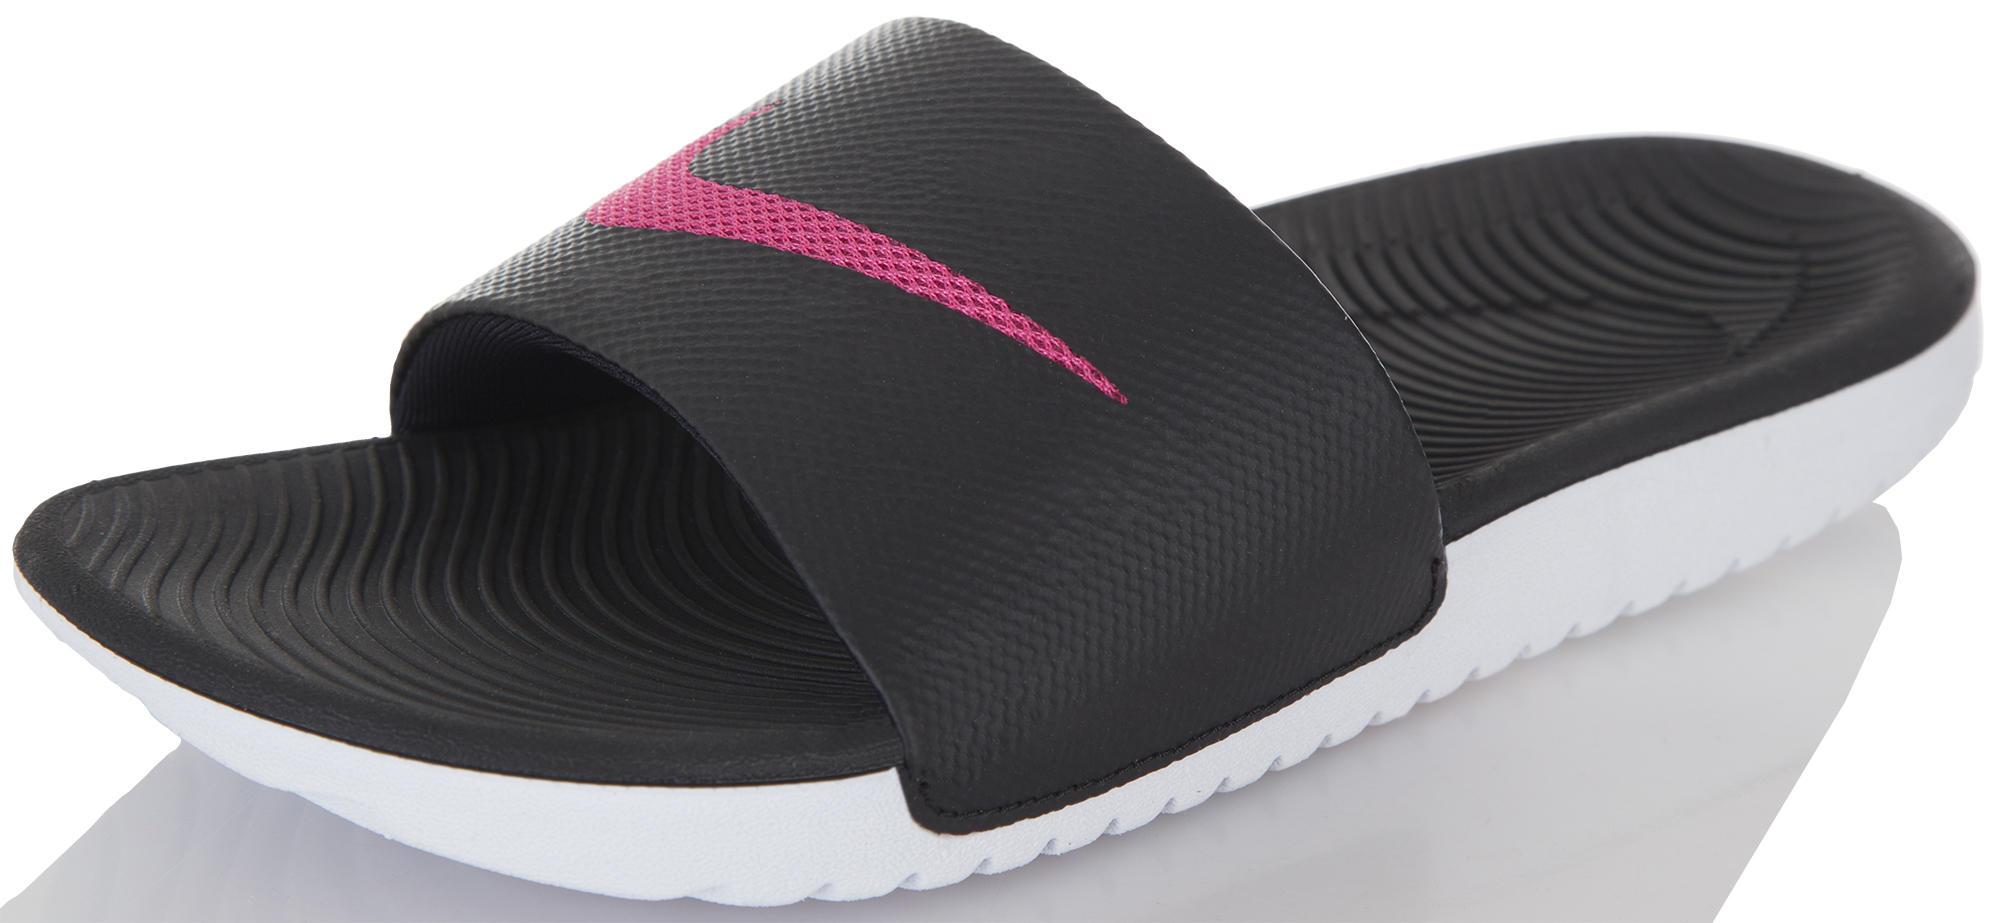 Nike Шлепанцы женские Nike Kawa Slide шлепанцы женские soludos knotted slide sandal ivory